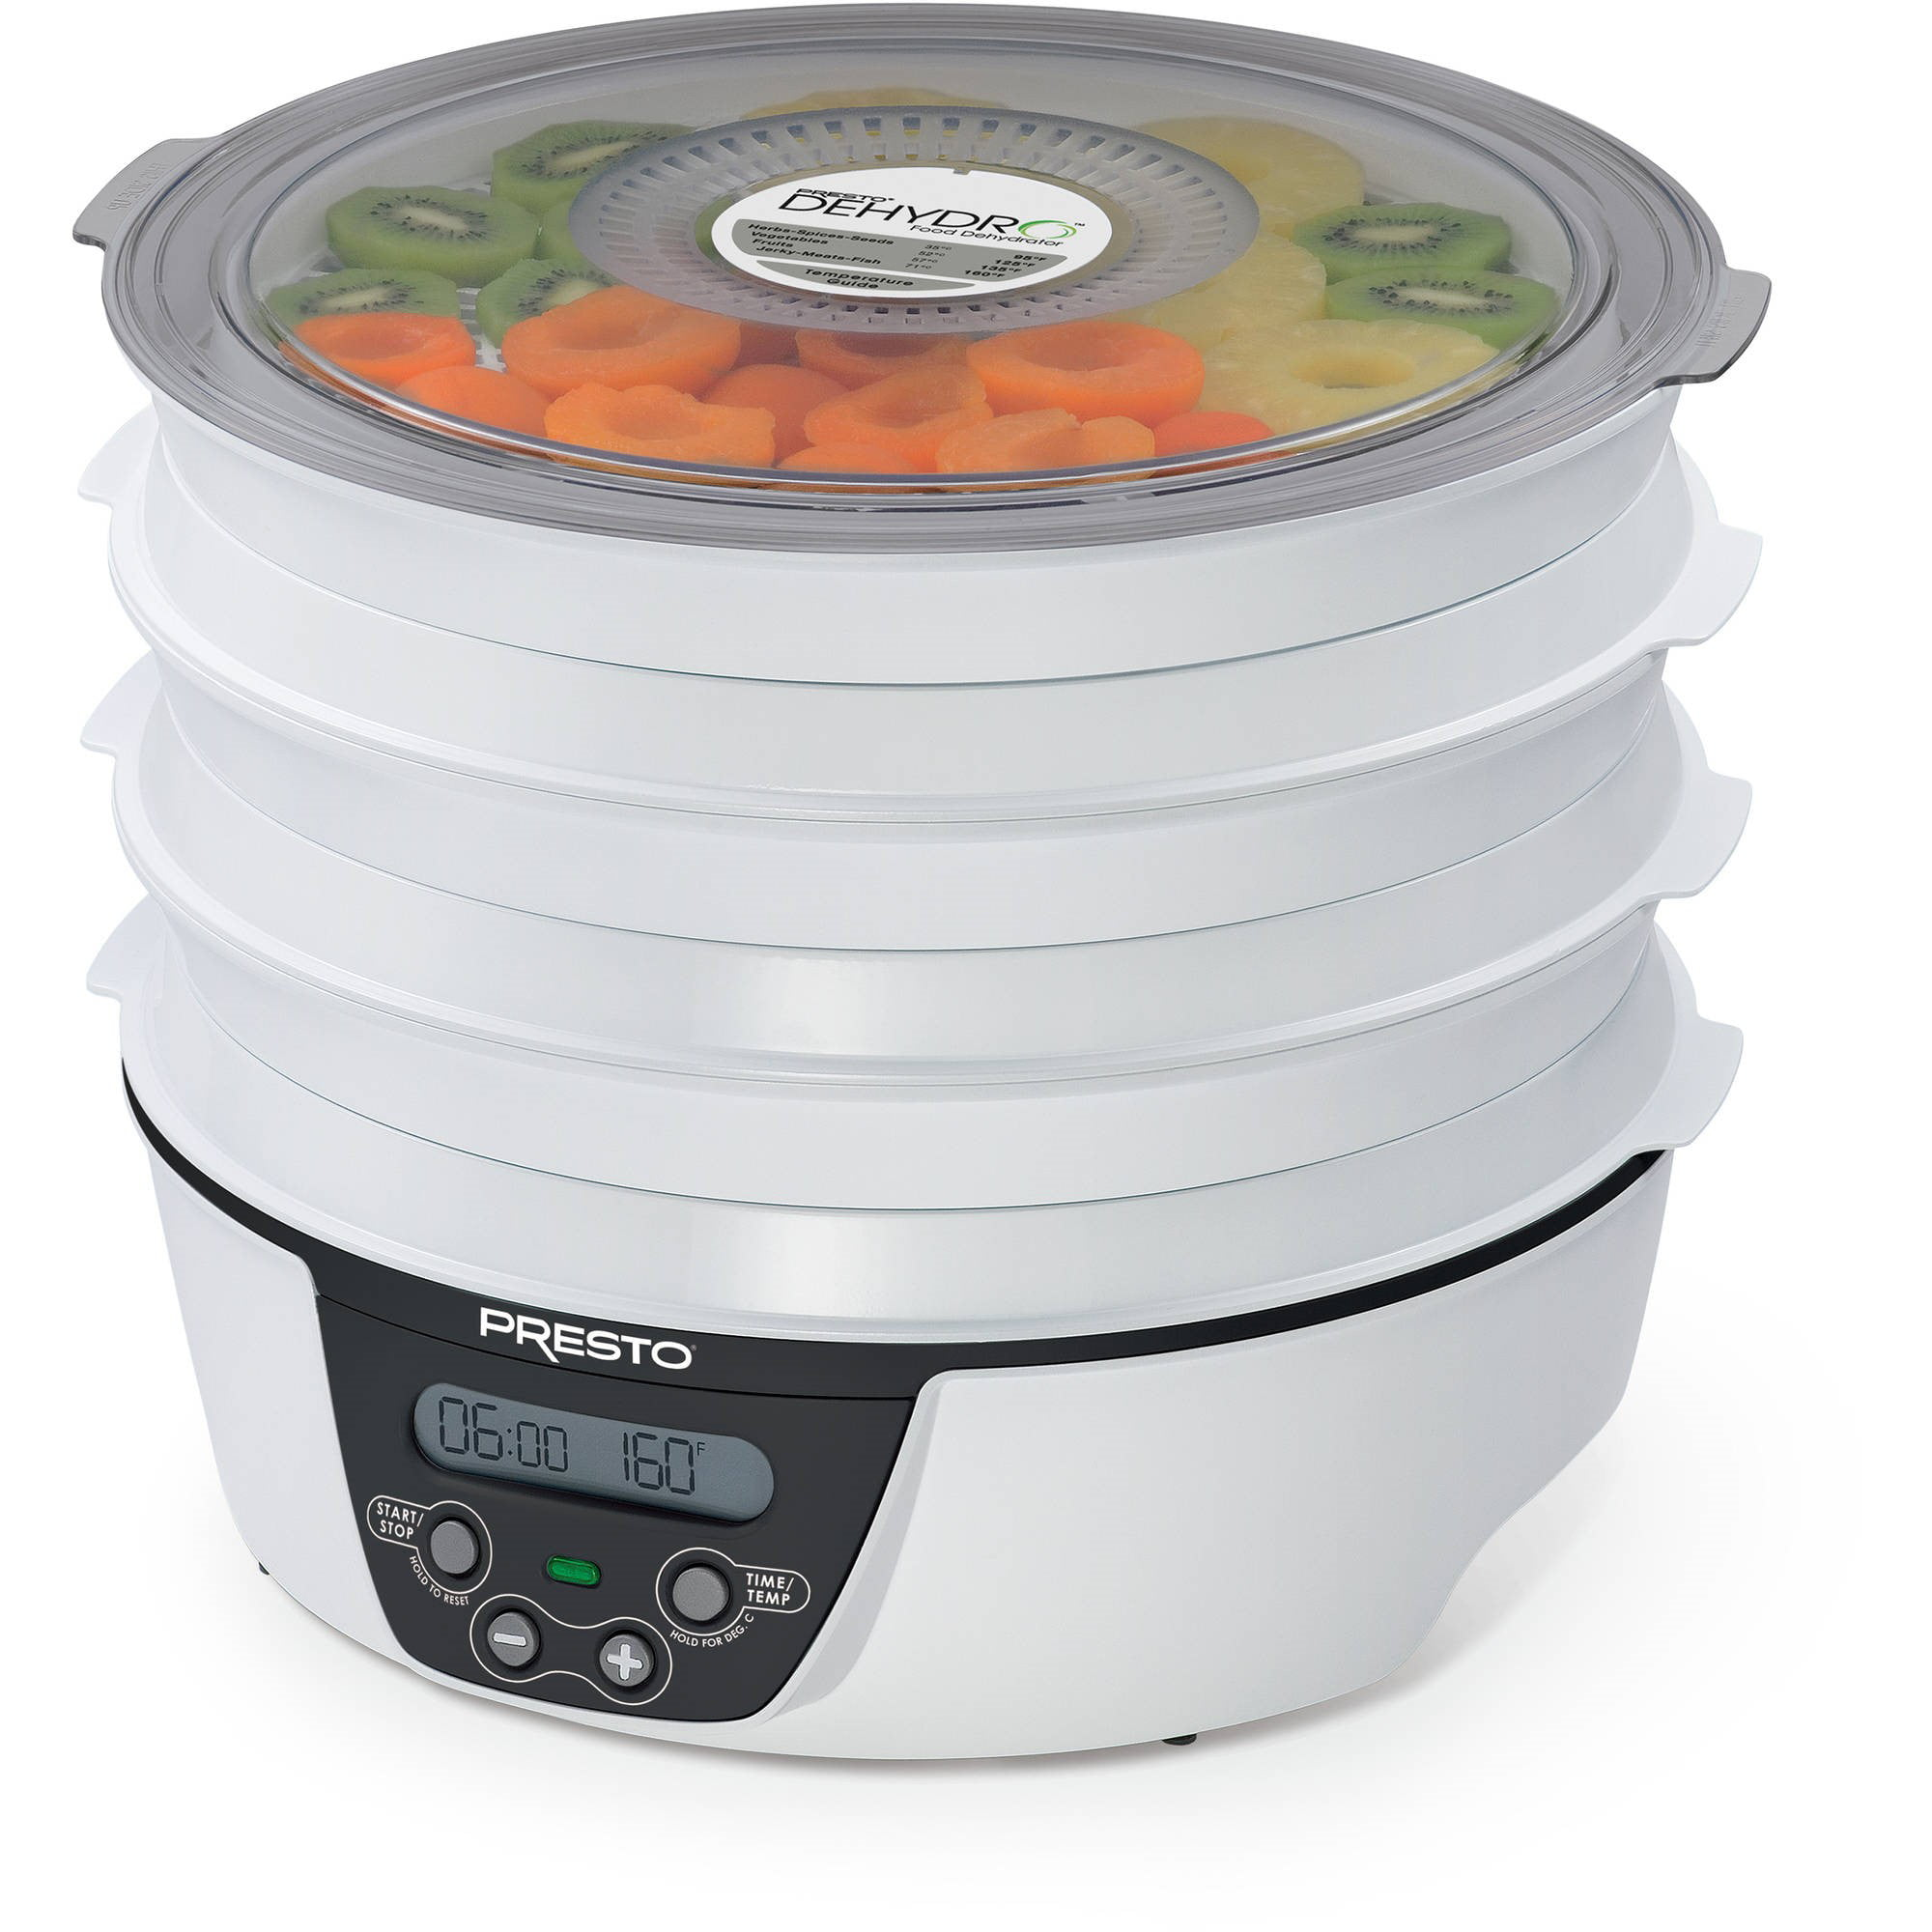 Presto Dehydro??? Digital Electric Food Dehydrator 06303 by National Presto Industries